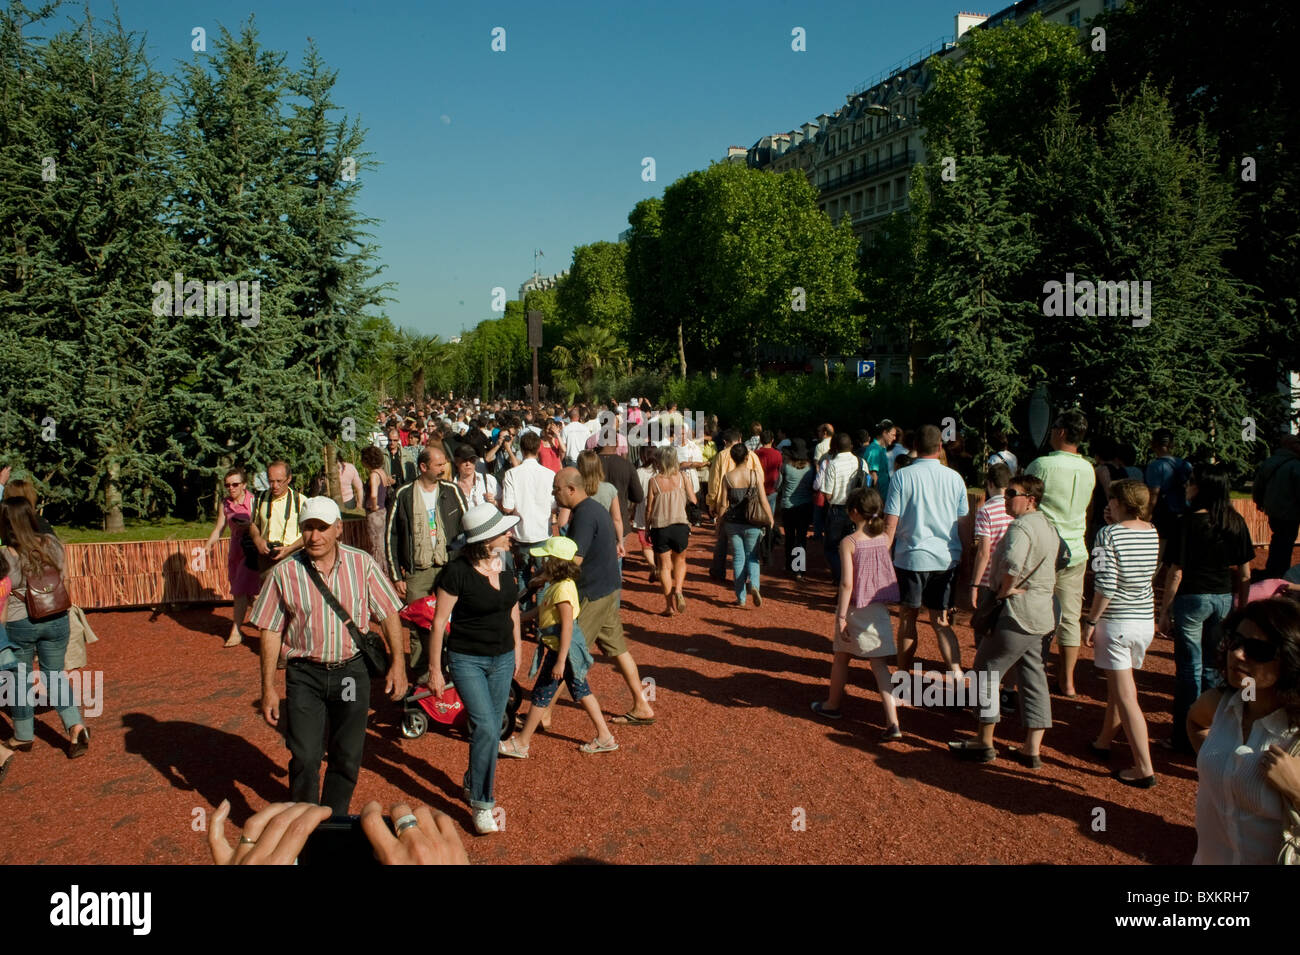 Crowd of Tourists, Visiting Paris, France, Garden Festival, Champs-Ely-sees Farmer's Event on Street - Stock Image